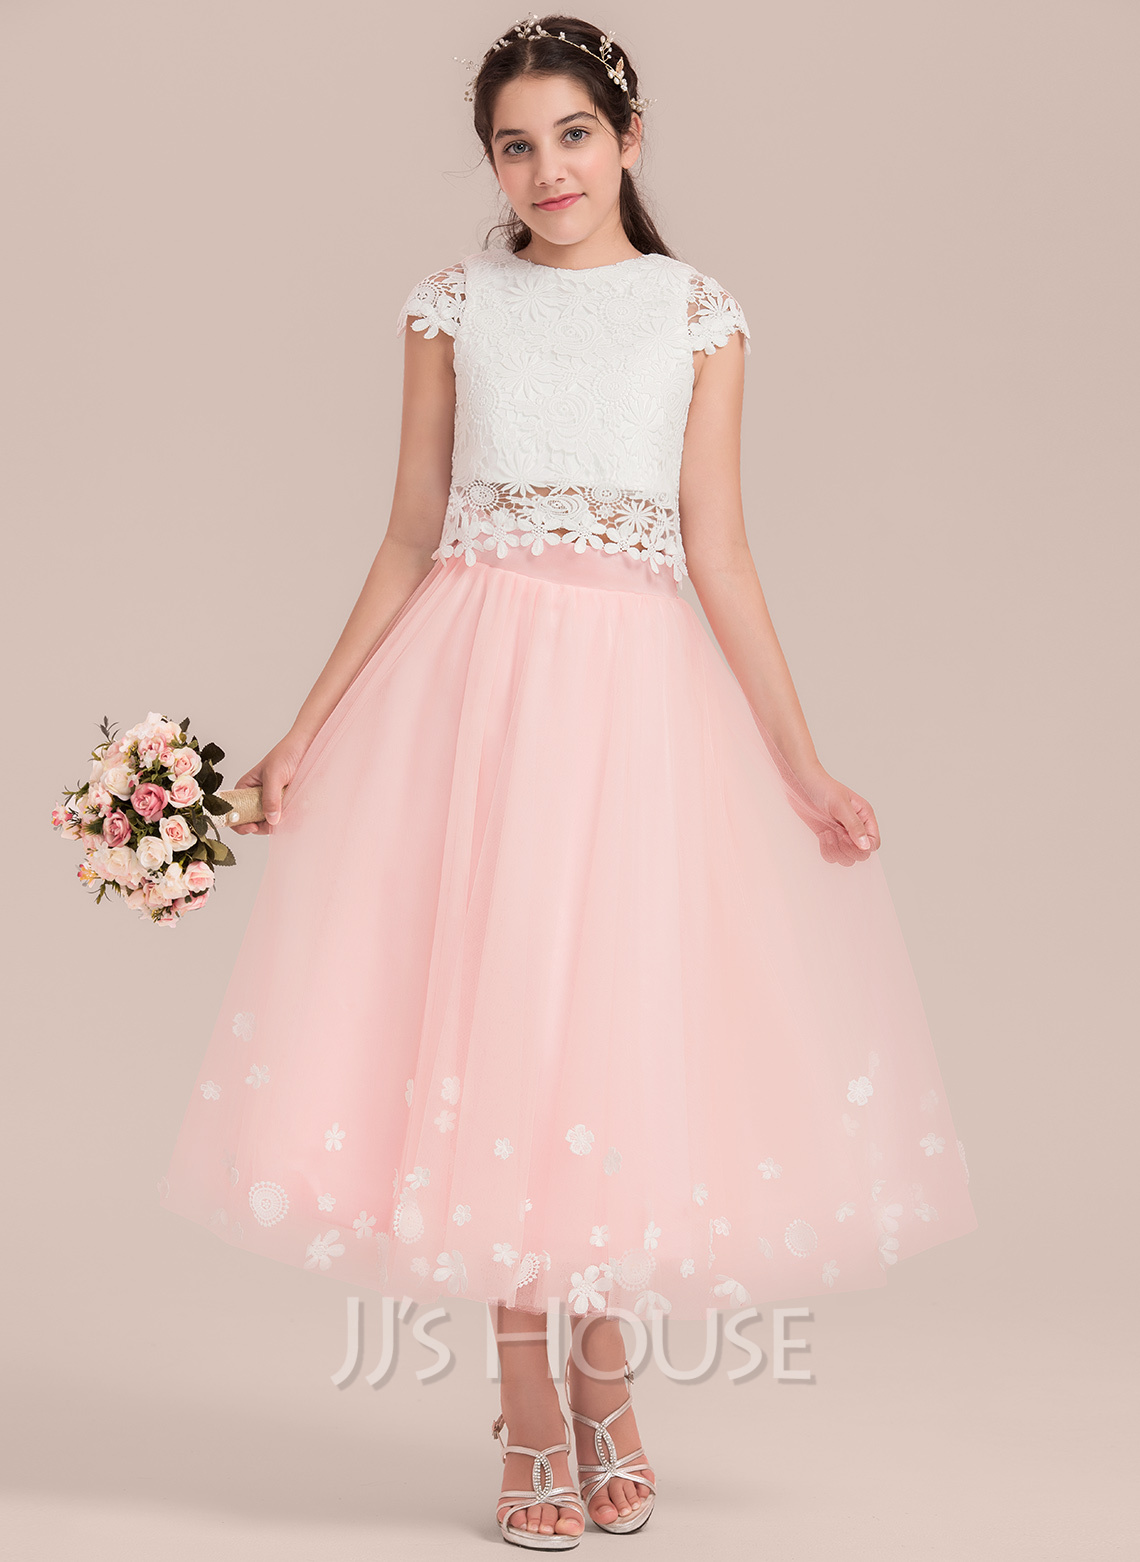 A-Line Scoop Neck Tea-Length Tulle Junior Bridesmaid Dress With Flower(s)